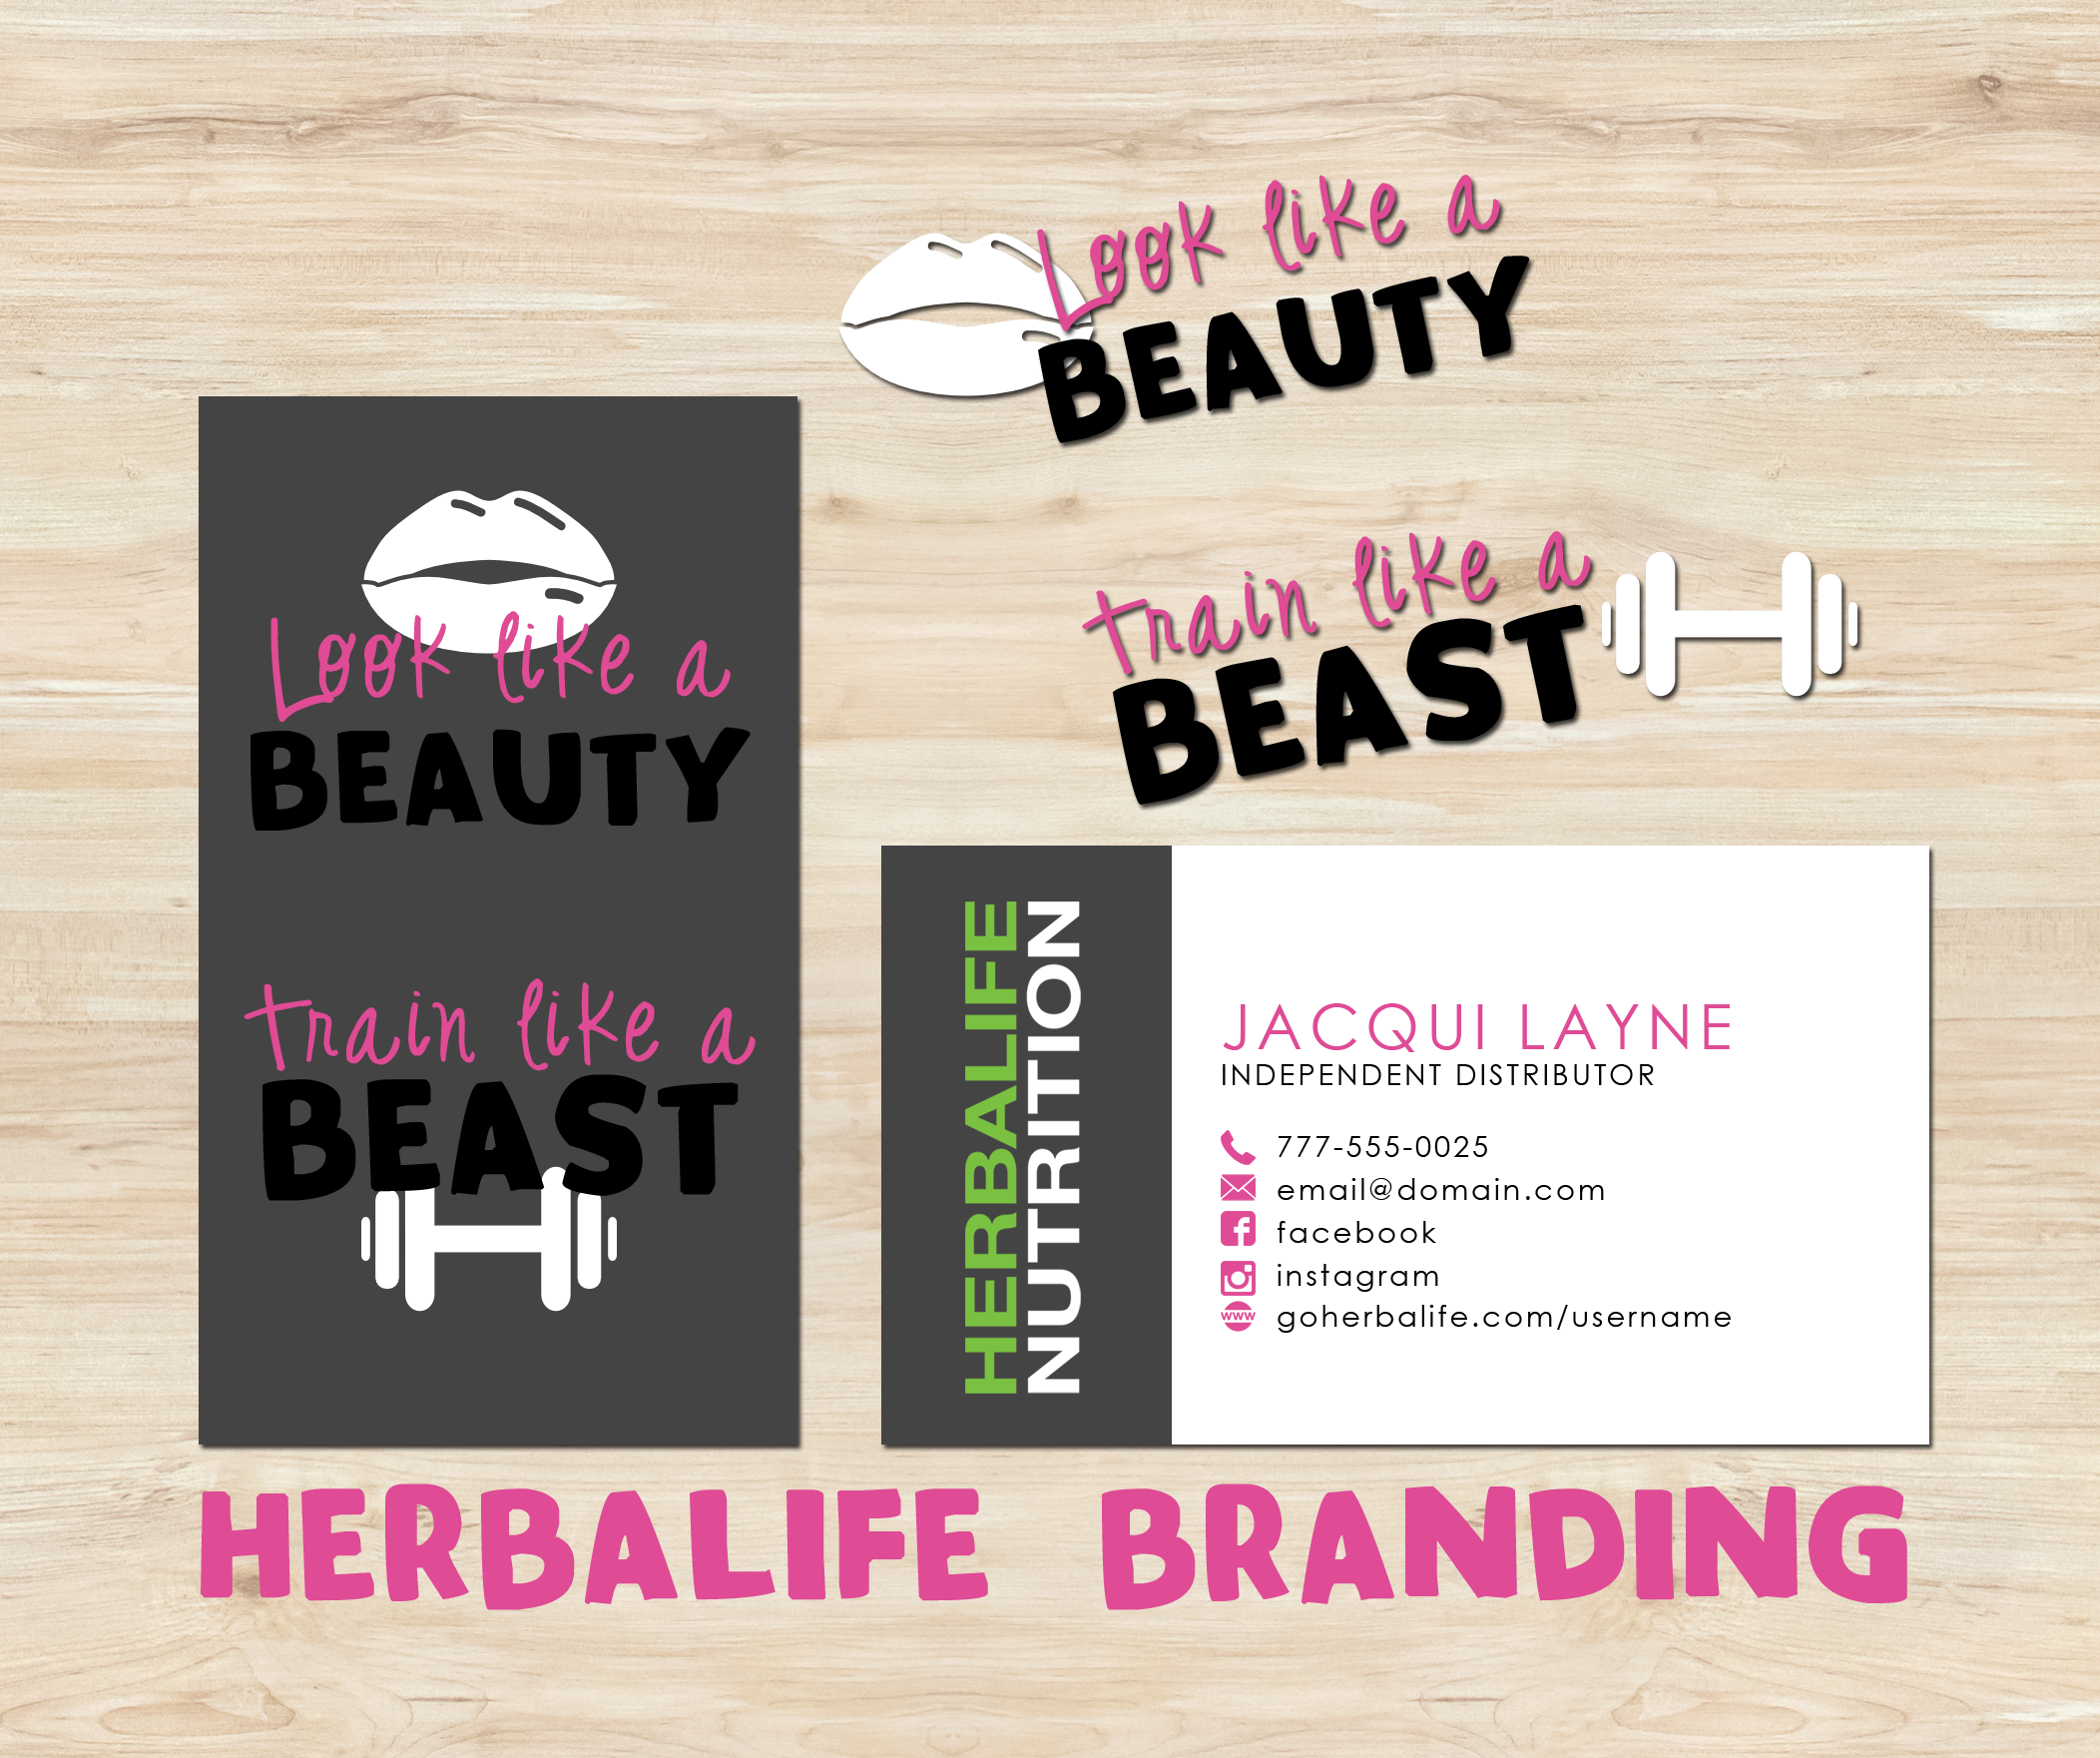 Herbalife Business Card Digital Template Look Like A Beauty Train